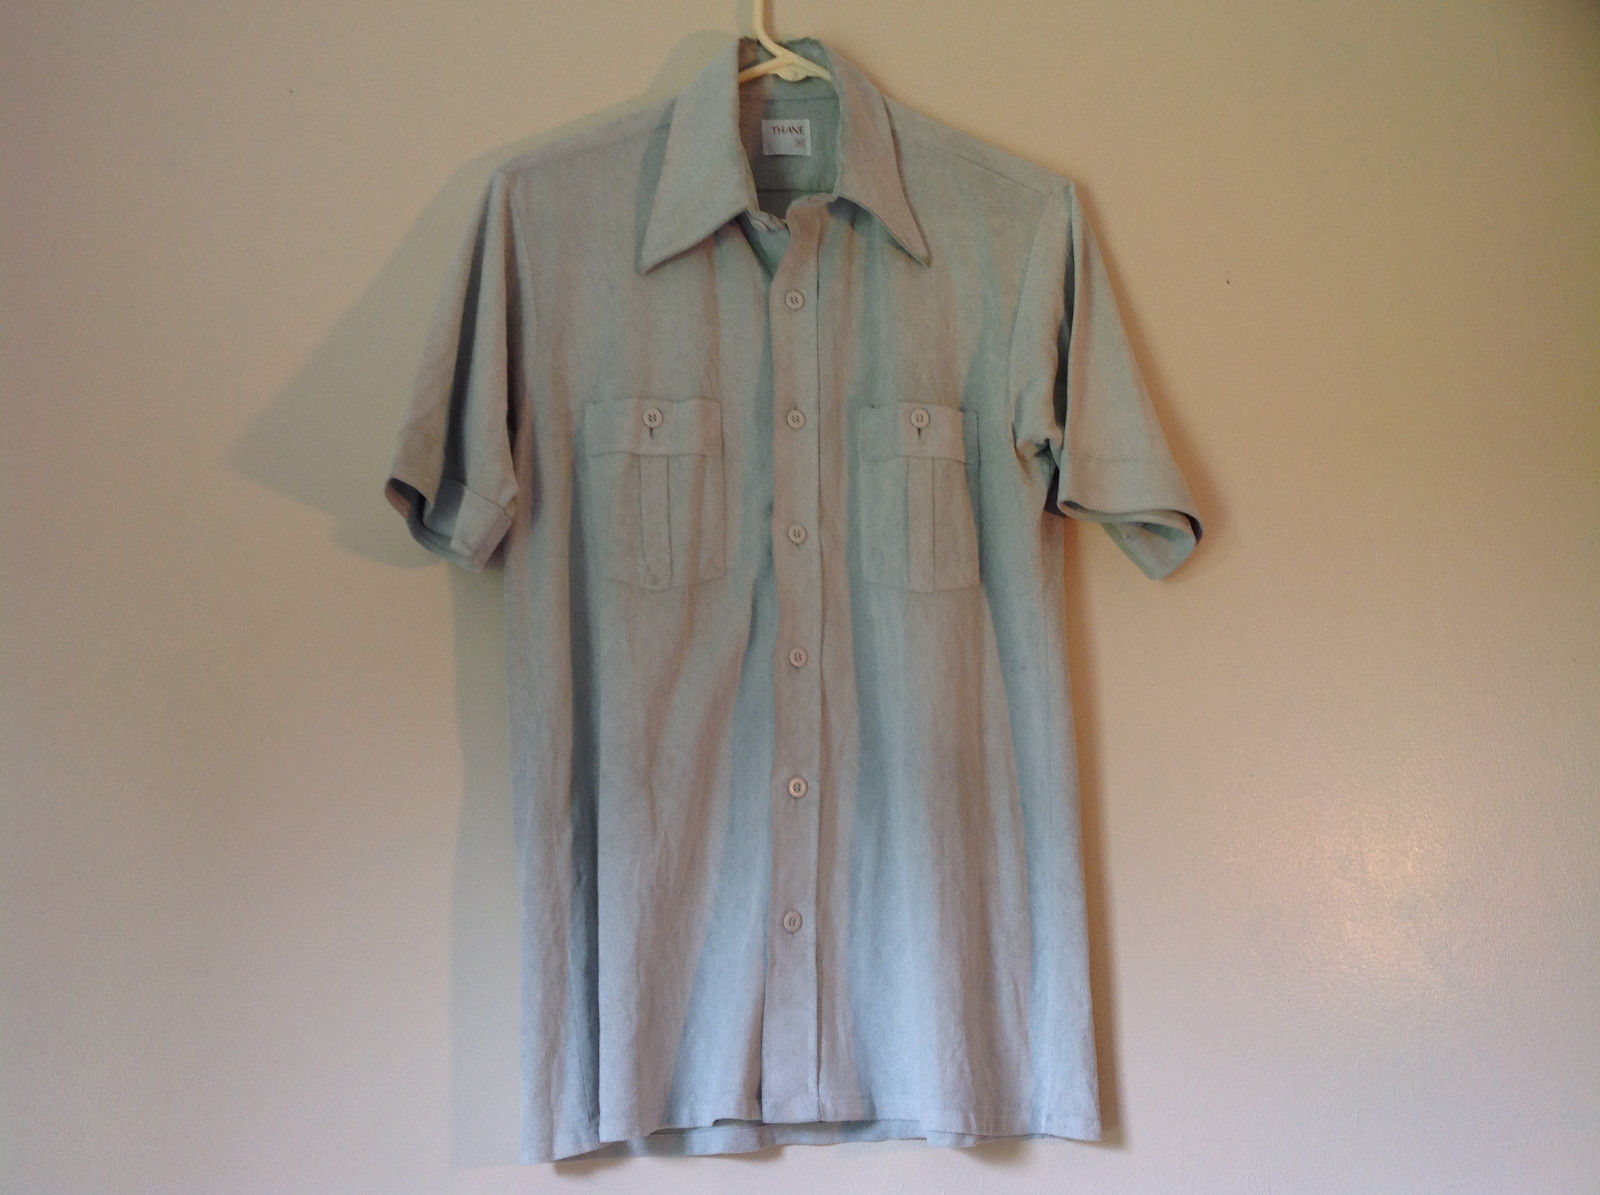 Thane Size Medium Very Light Green Short Sleeve Button Down Casual Shirt